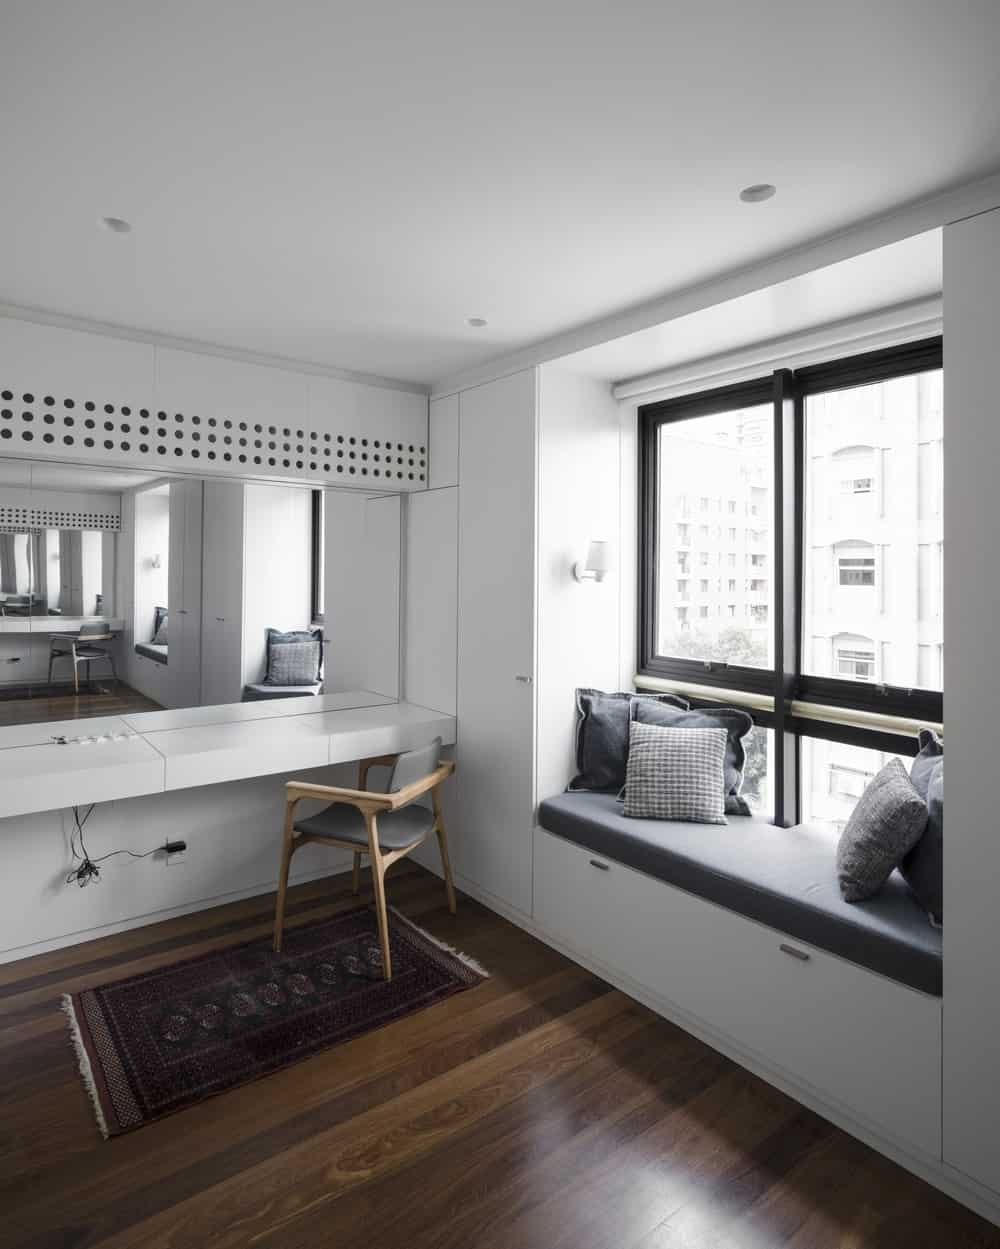 This is a vanity area with a large mirror, a counter and a built-in cushioned bench by the window.